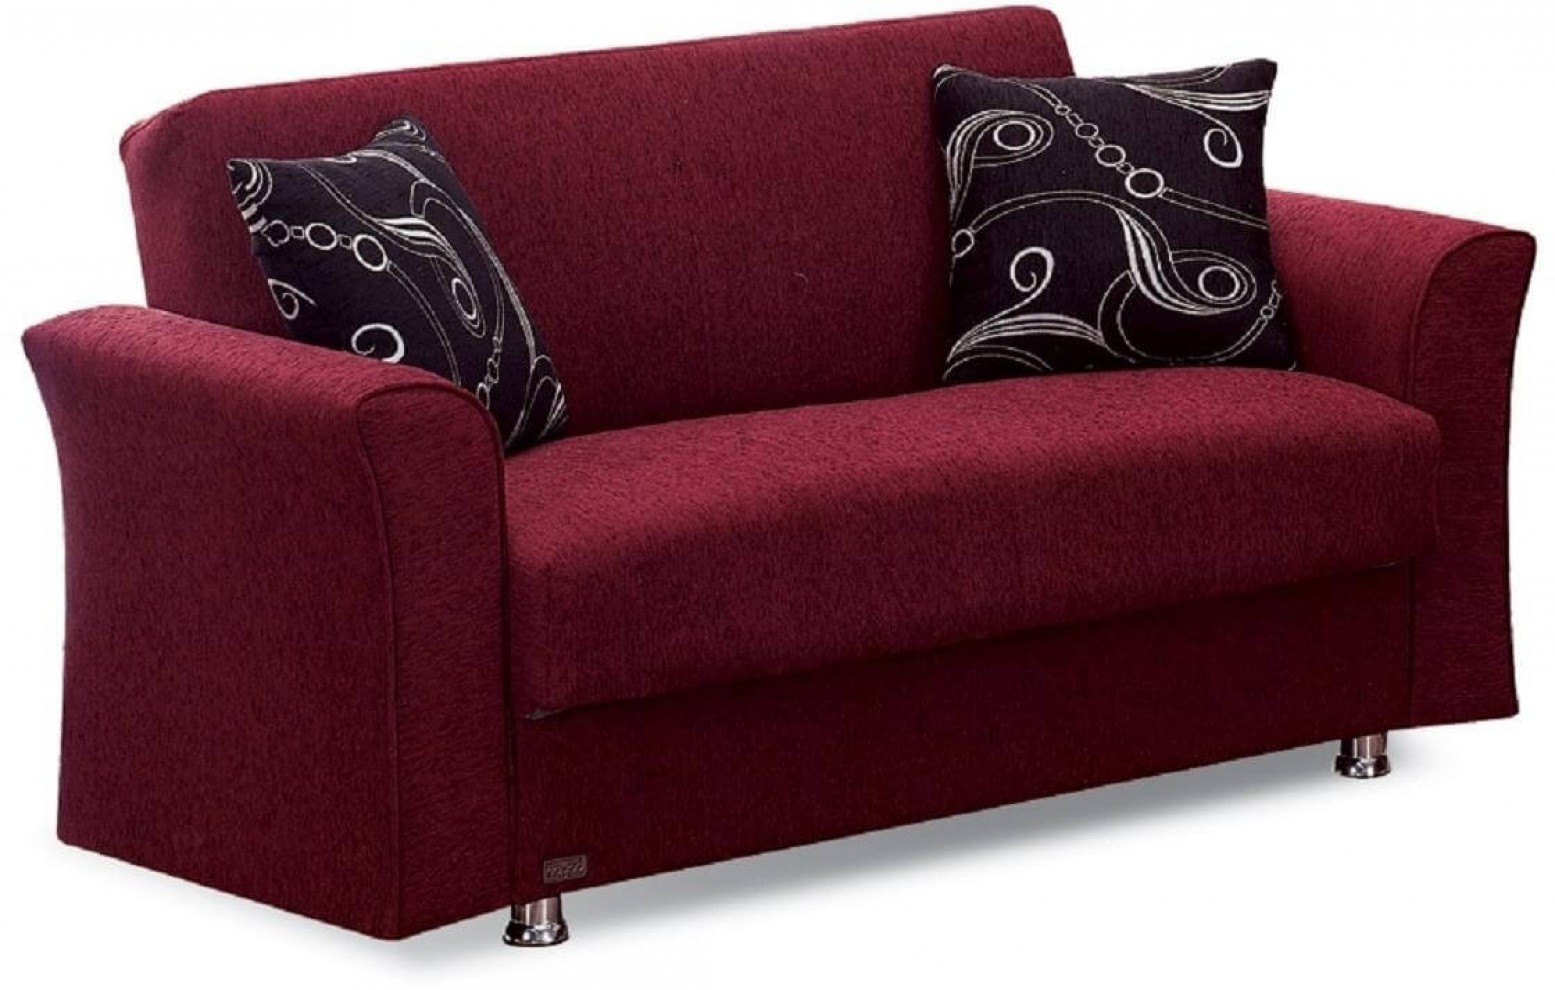 Pleasing Ohio Fabric Storage Loveseat Pabps2019 Chair Design Images Pabps2019Com